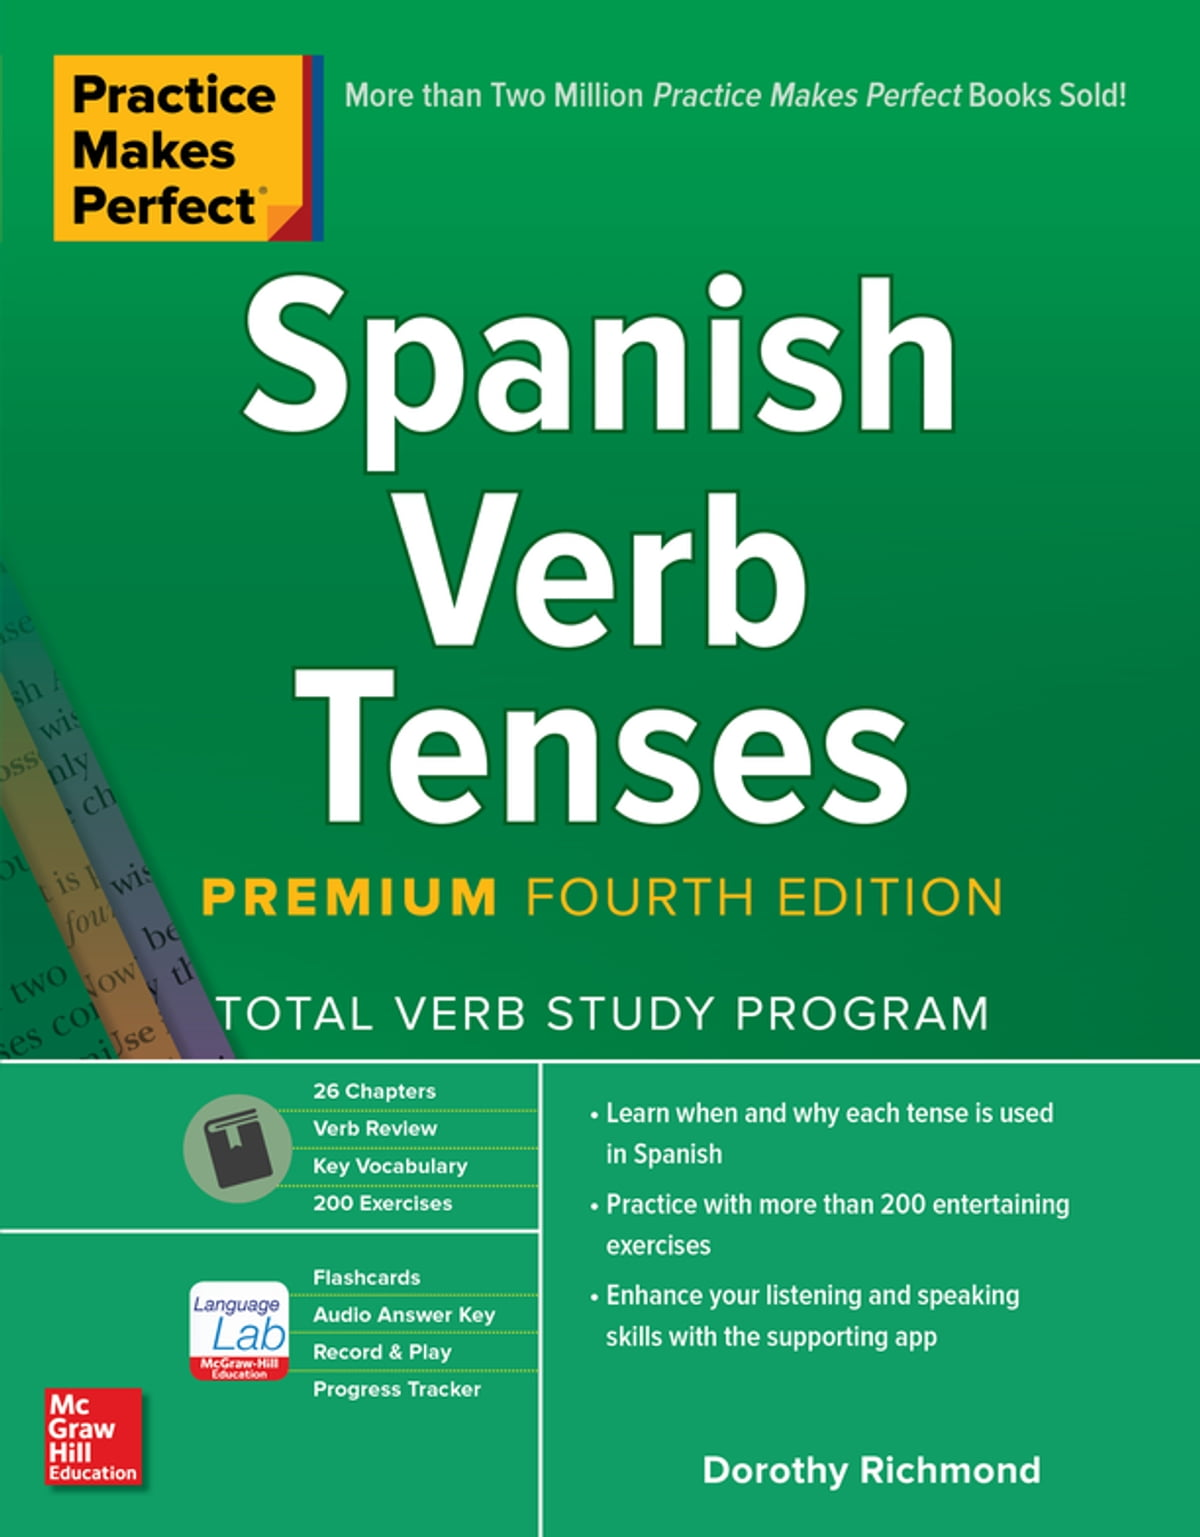 Practice Makes Perfect: Spanish Verb Tenses, Premium Fourth Edition ebook  by Dorothy Richmond - Rakuten Kobo